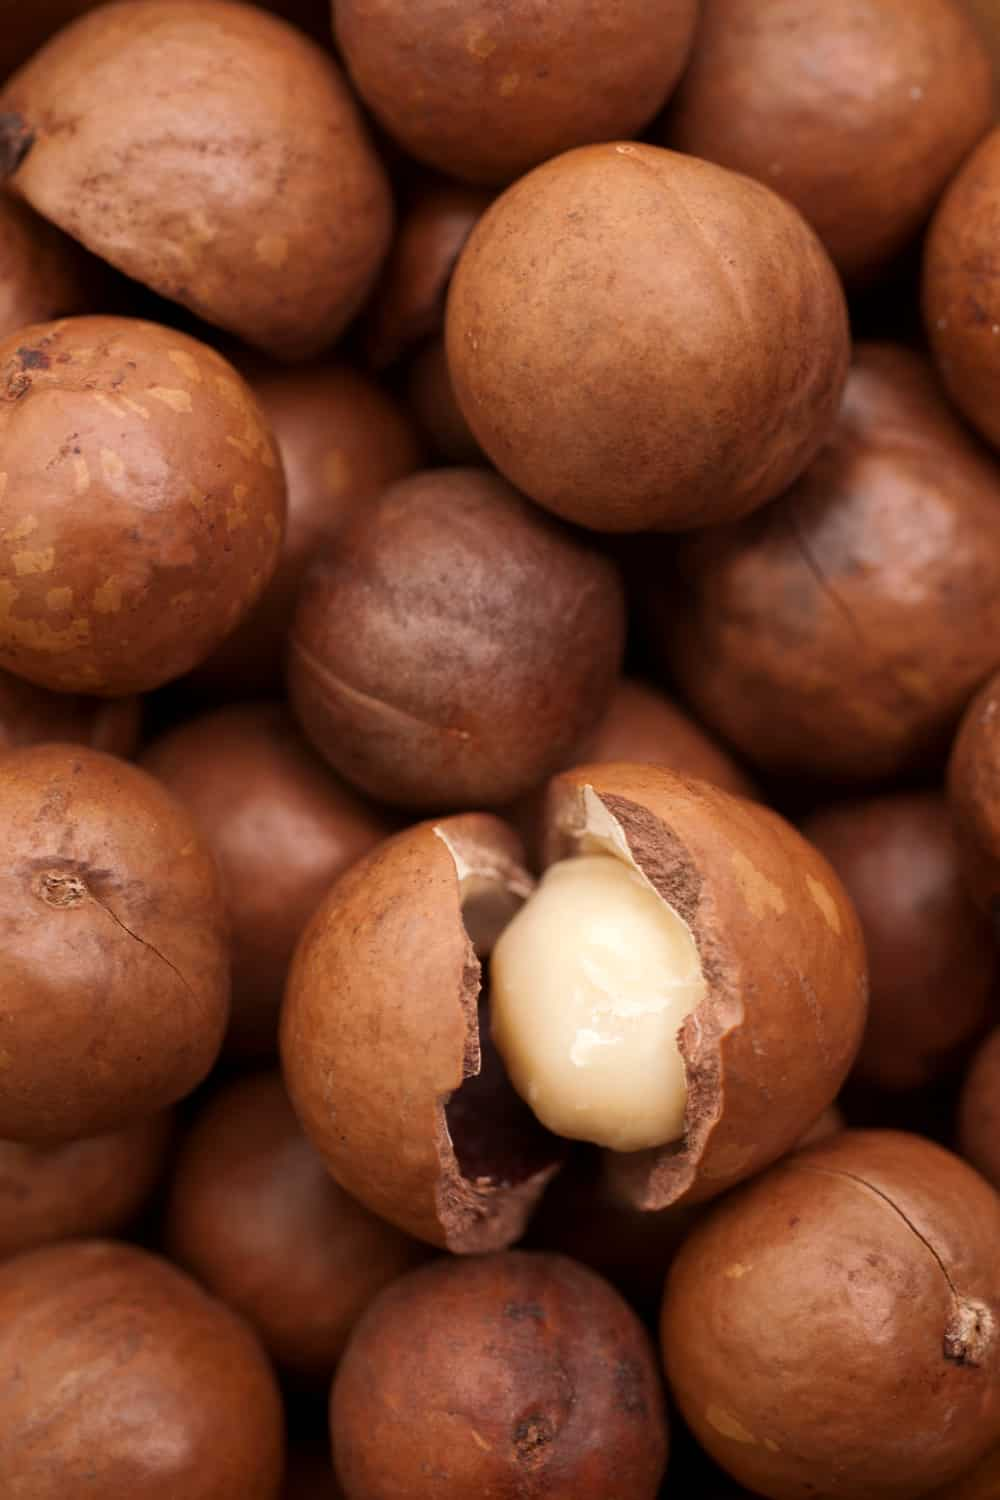 The Risk of Consuming Expired Macadamia Nuts